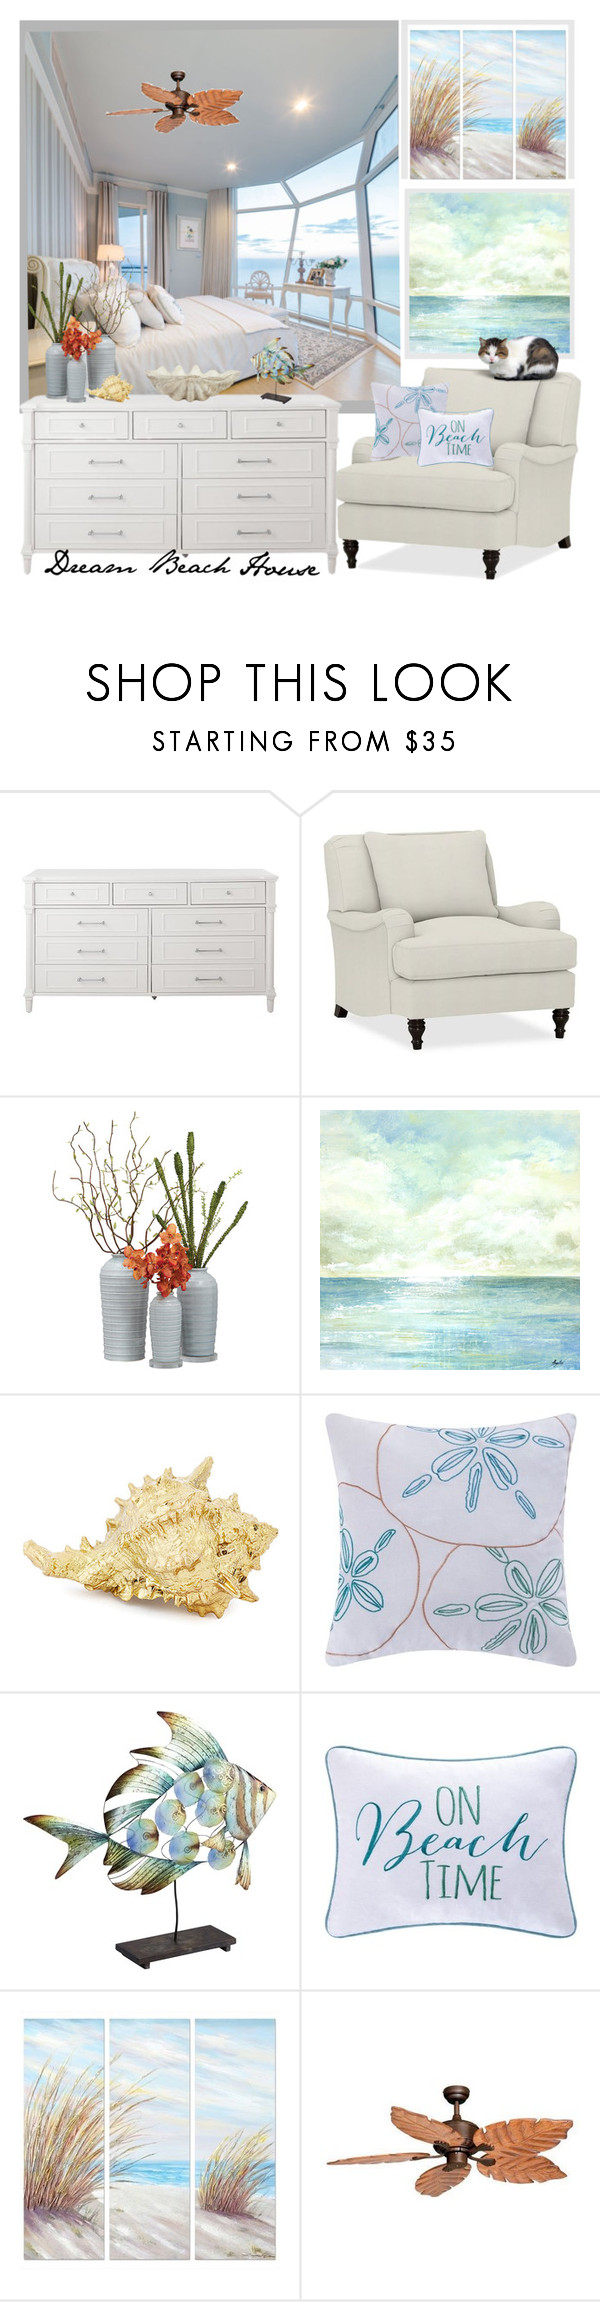 """""""Horizon's Edge ..."""" by krusie ❤ liked on Polyvore featuring interior, interiors, interior design, home, home decor, interior decorating, Home Decorators Collection, Pottery Barn, C & F and Pier 1 Imports"""